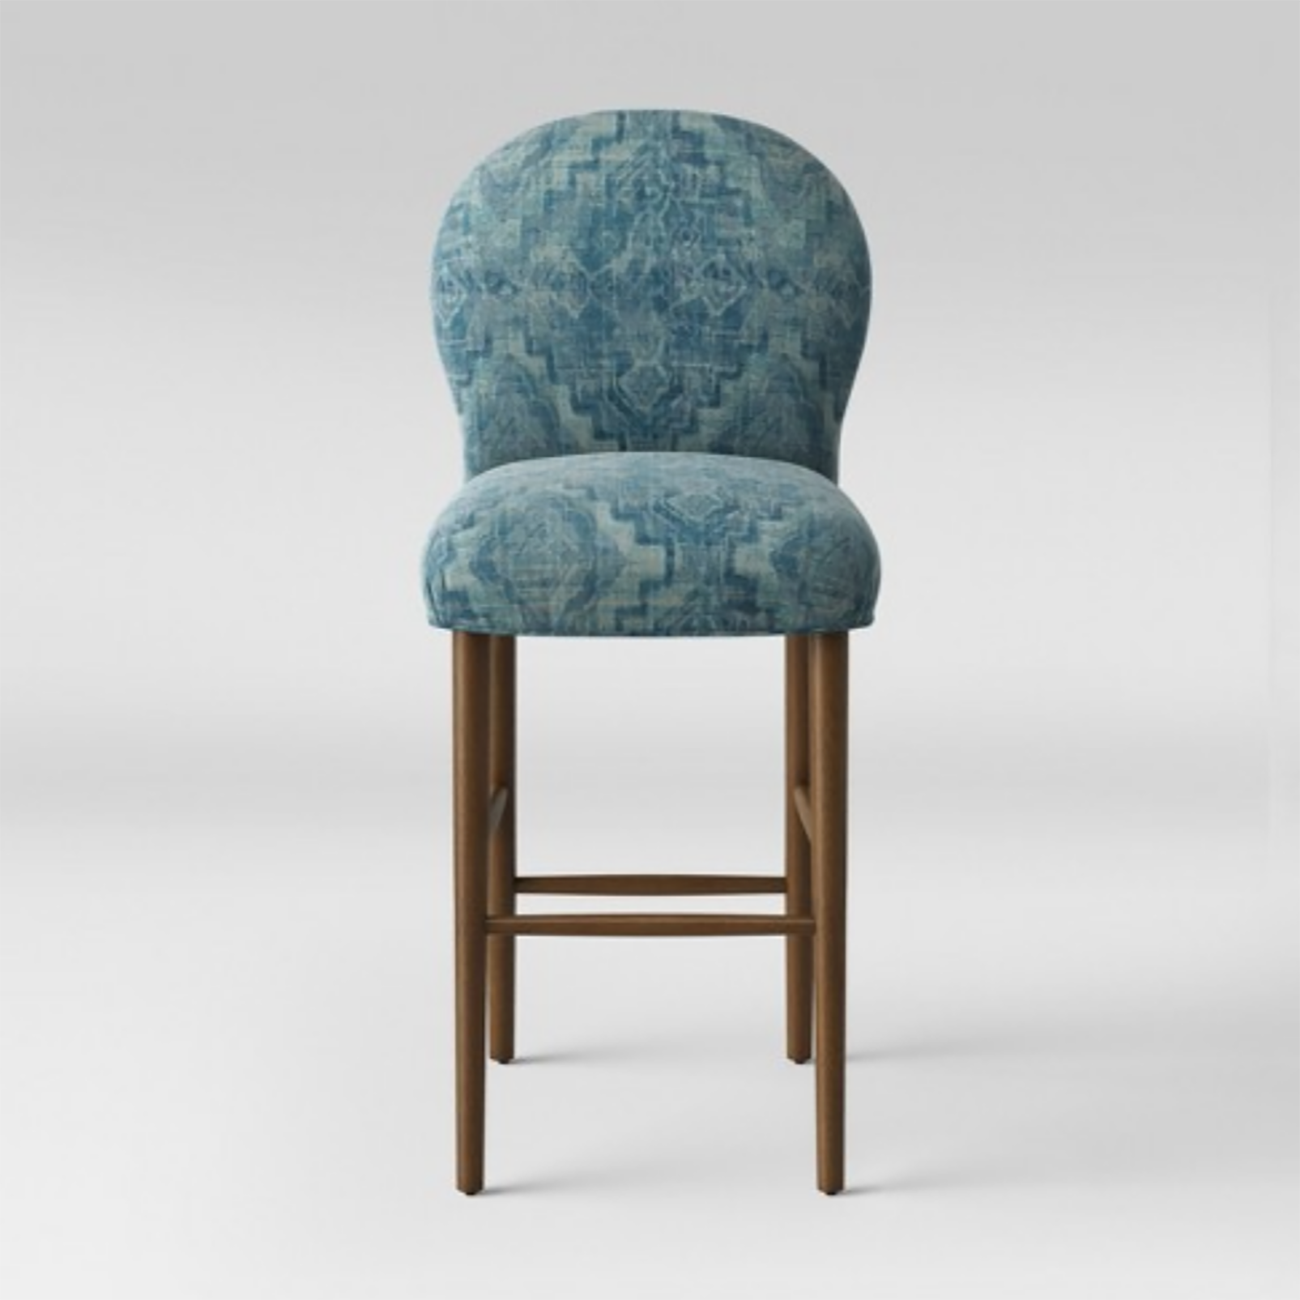 Swell Get The Global Eclectic Look Our Fave Pieces From The Lamtechconsult Wood Chair Design Ideas Lamtechconsultcom